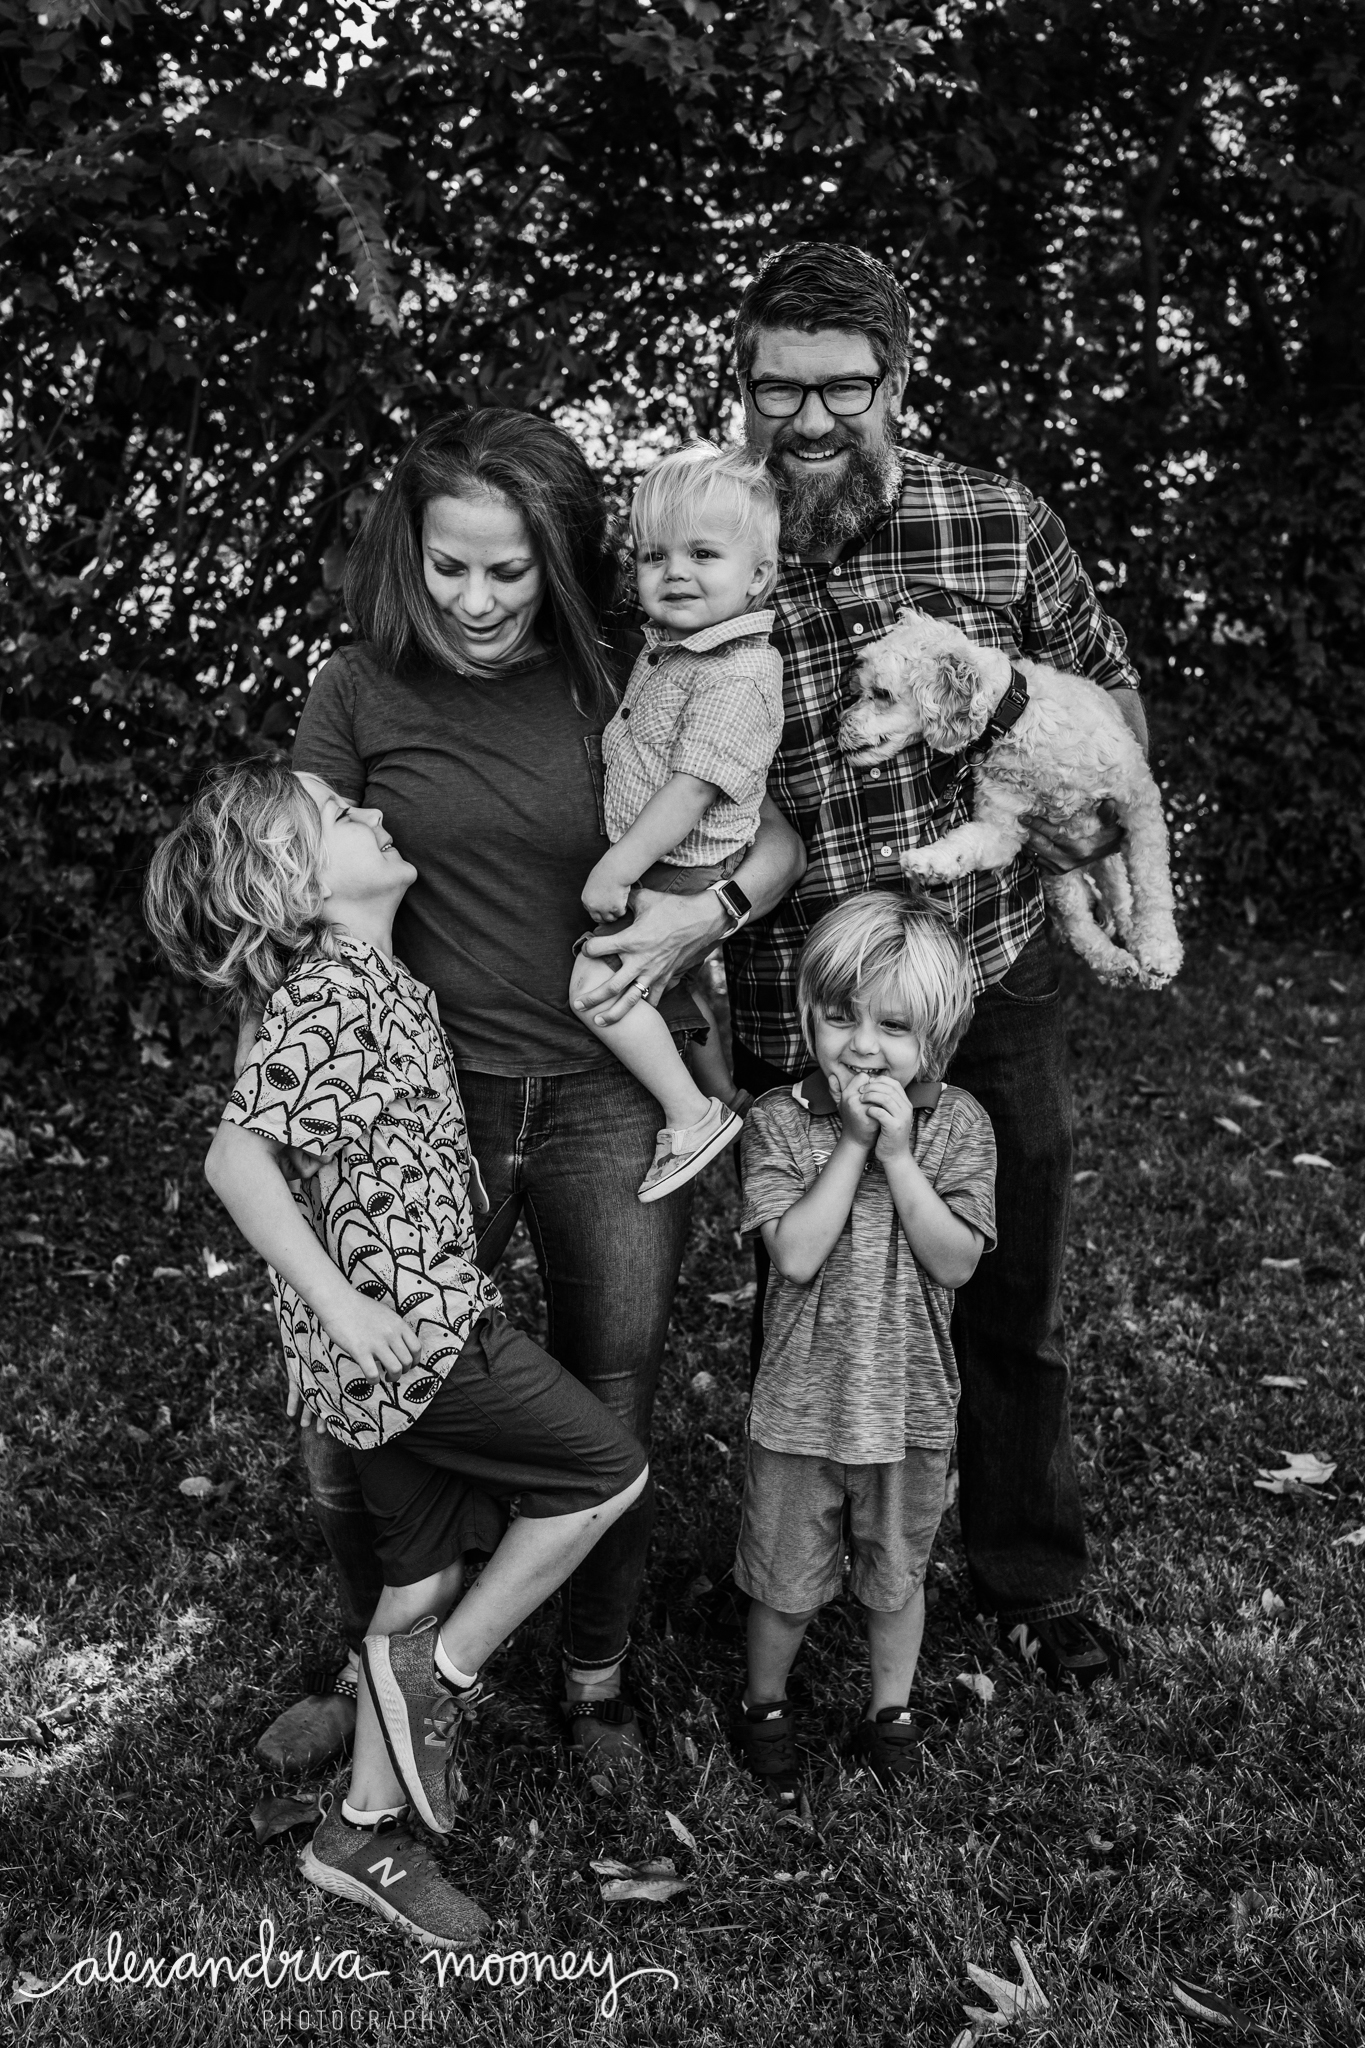 TheRosenbergerFamily_Watermarked-7.jpg